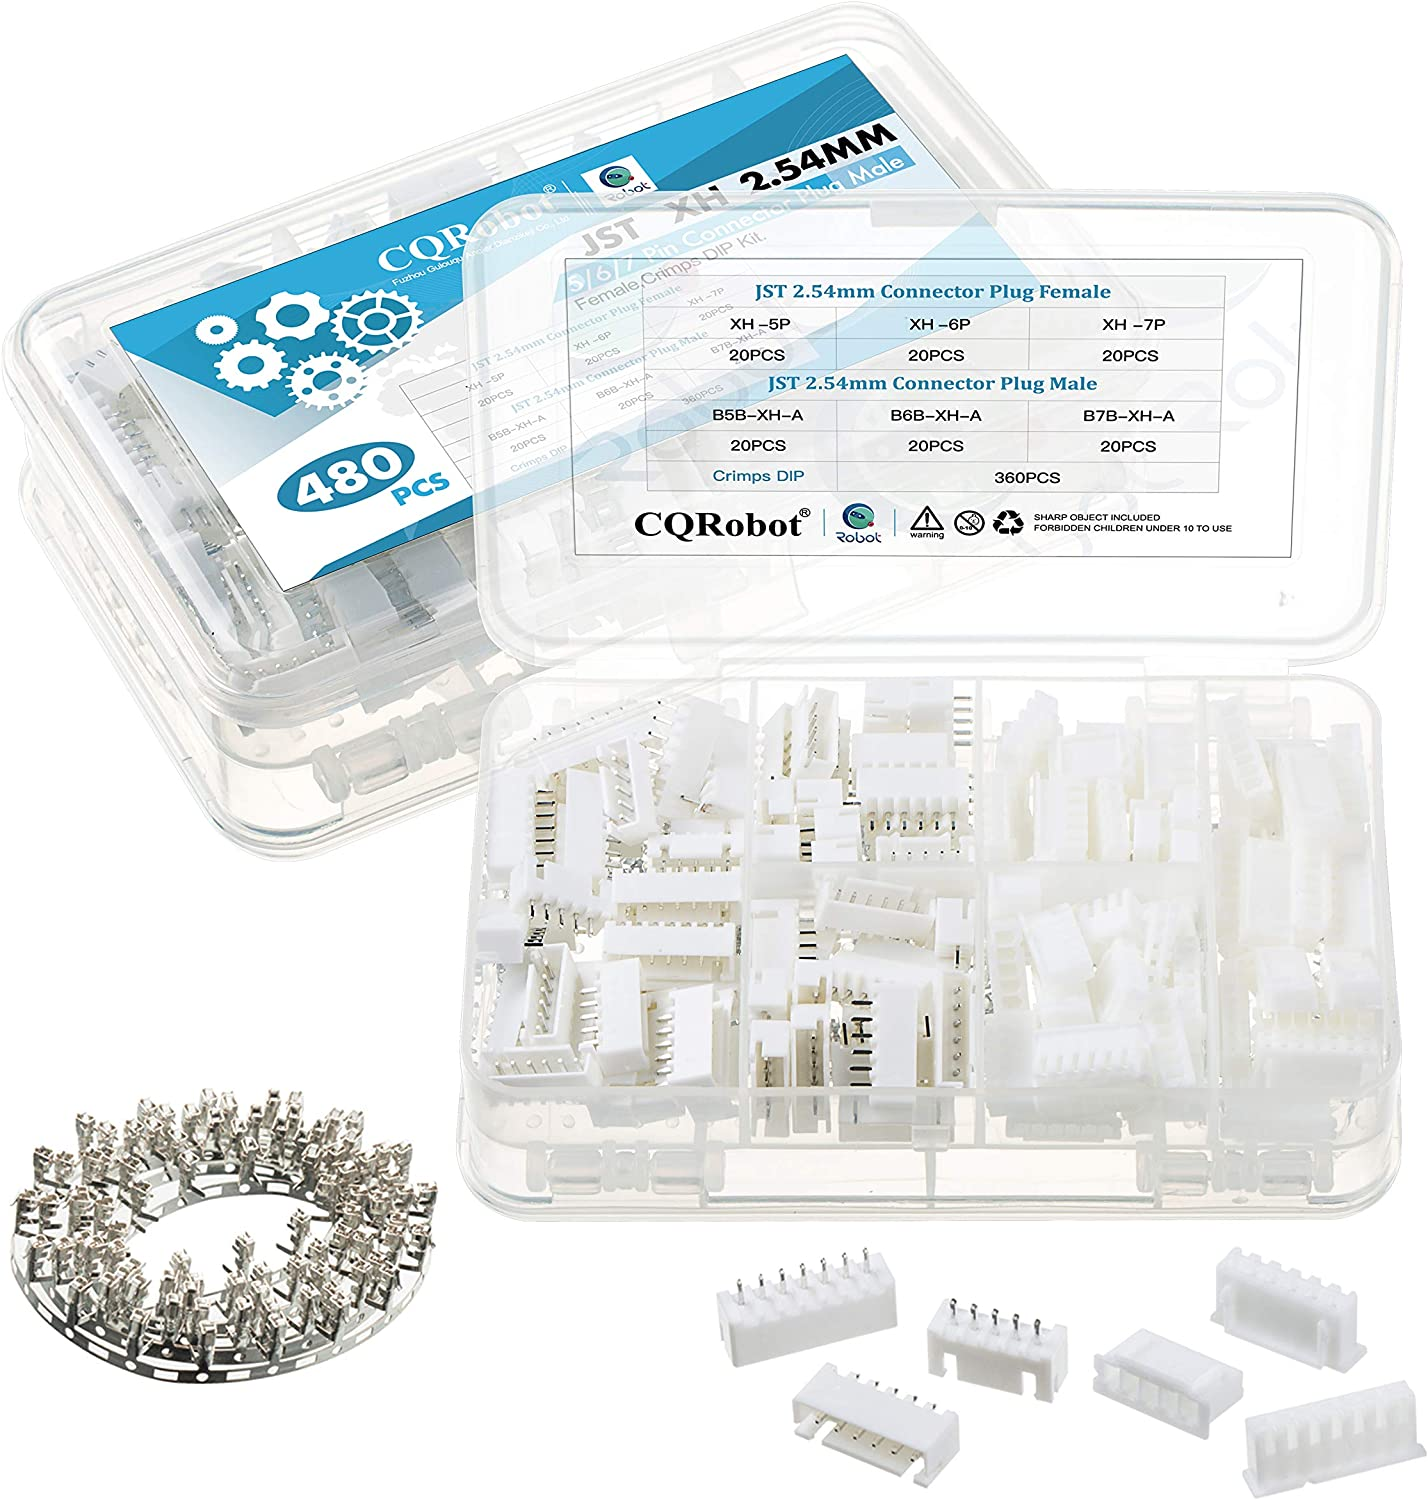 5//6//7 Pin Housing JST Adapter Cable Connector Socket Male and Female 2.0mm Pitch Female Pin Header Crimp Dip Kit. CQRobot 480 Pieces 2.0mm JST-PA-SMT JST Connector Kit JST PA SMT